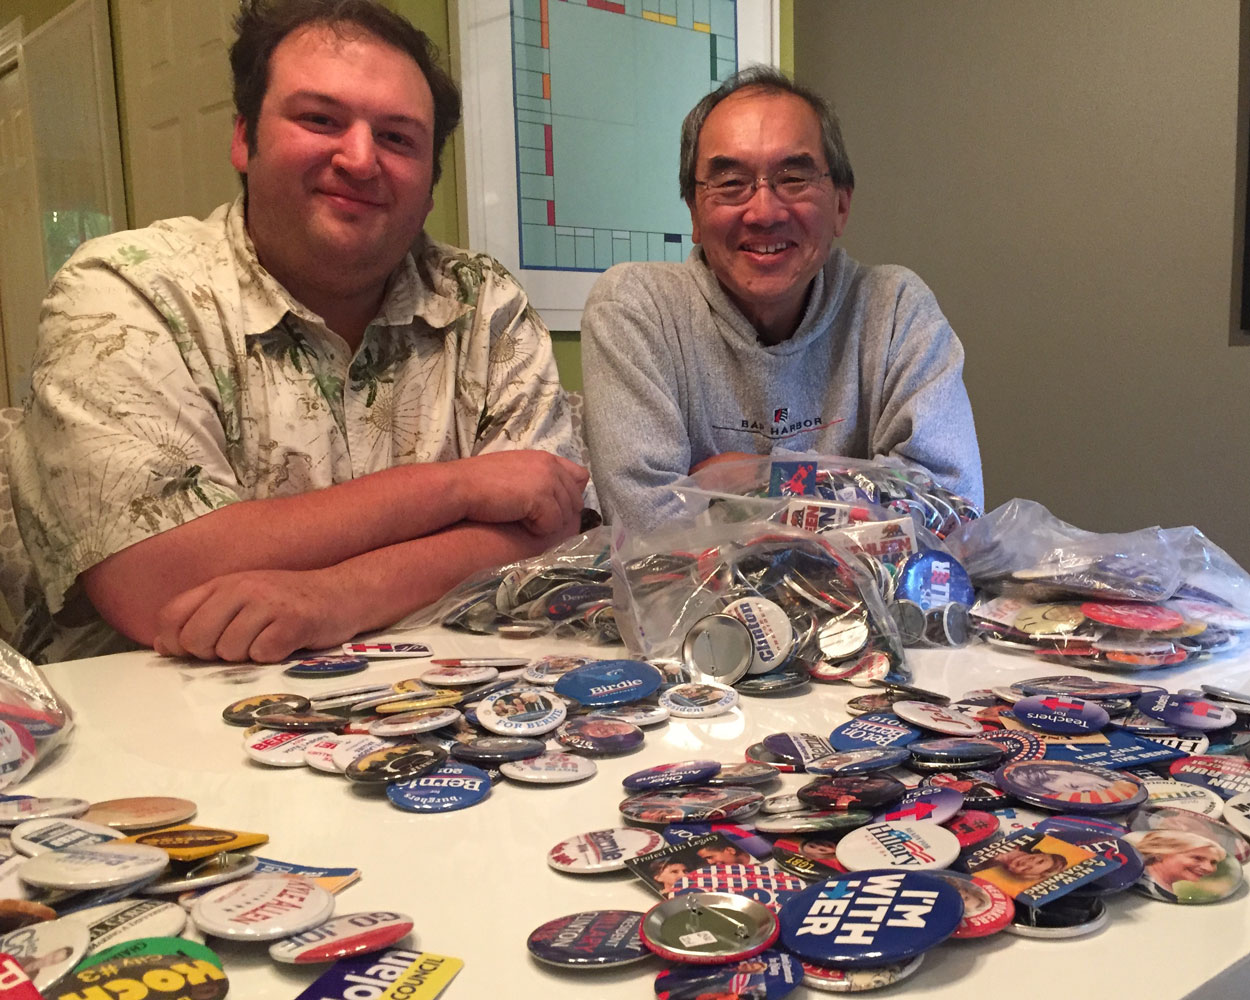 Trading with fellow collectors Carl Fisher and Cary Jung